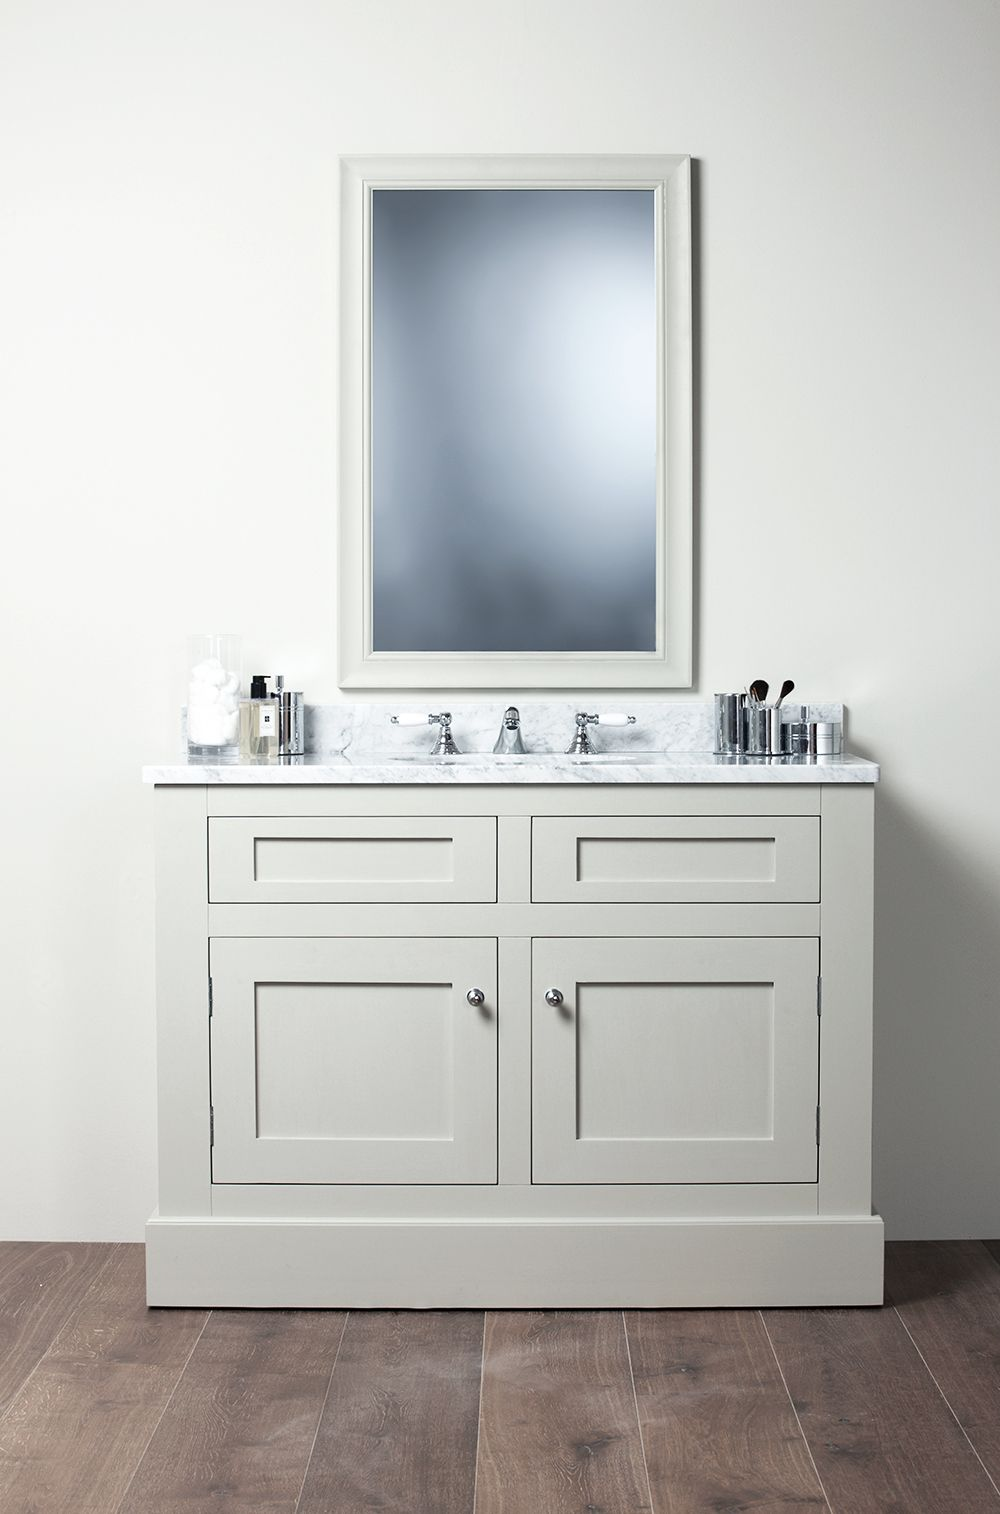 White Bathroom Sink Cabinets shaker style bathroom vanity unit: shaker bathroom vanity unit